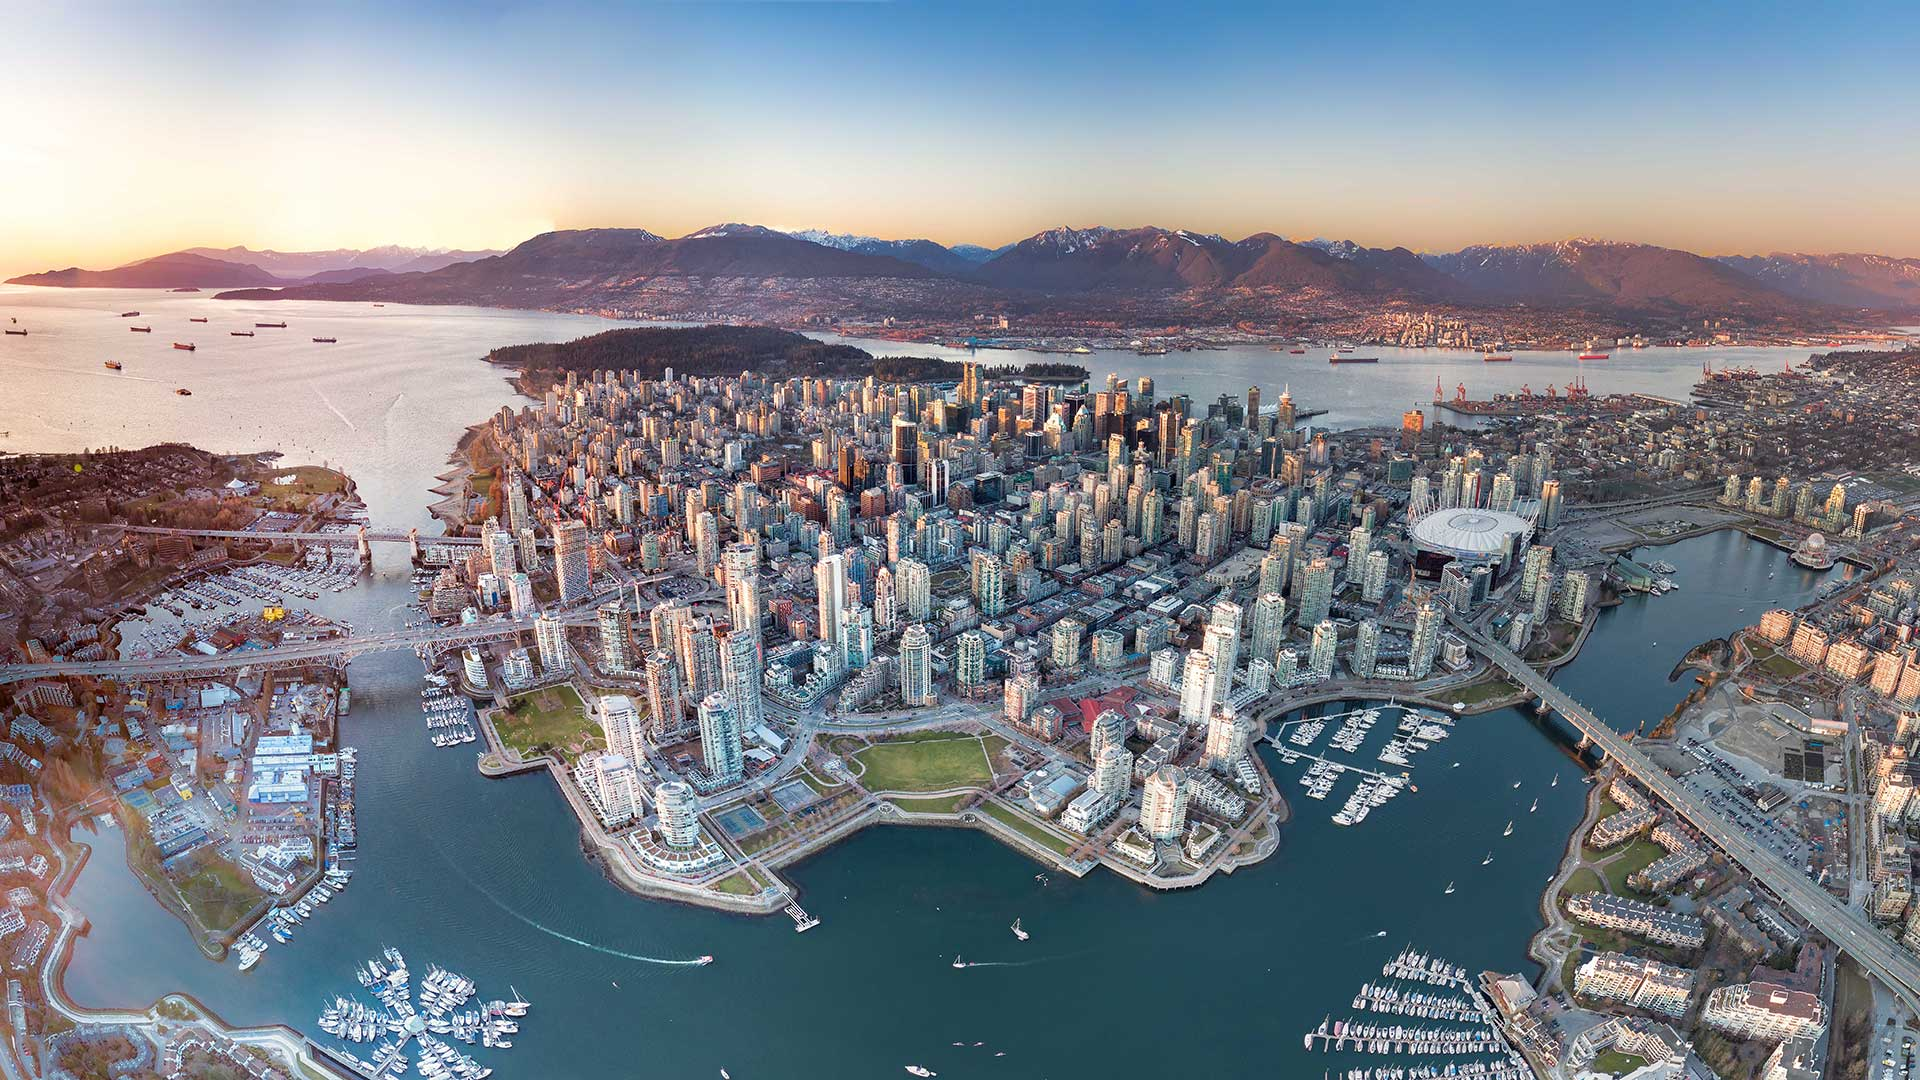 Panorama to illustrate dating in vancouver